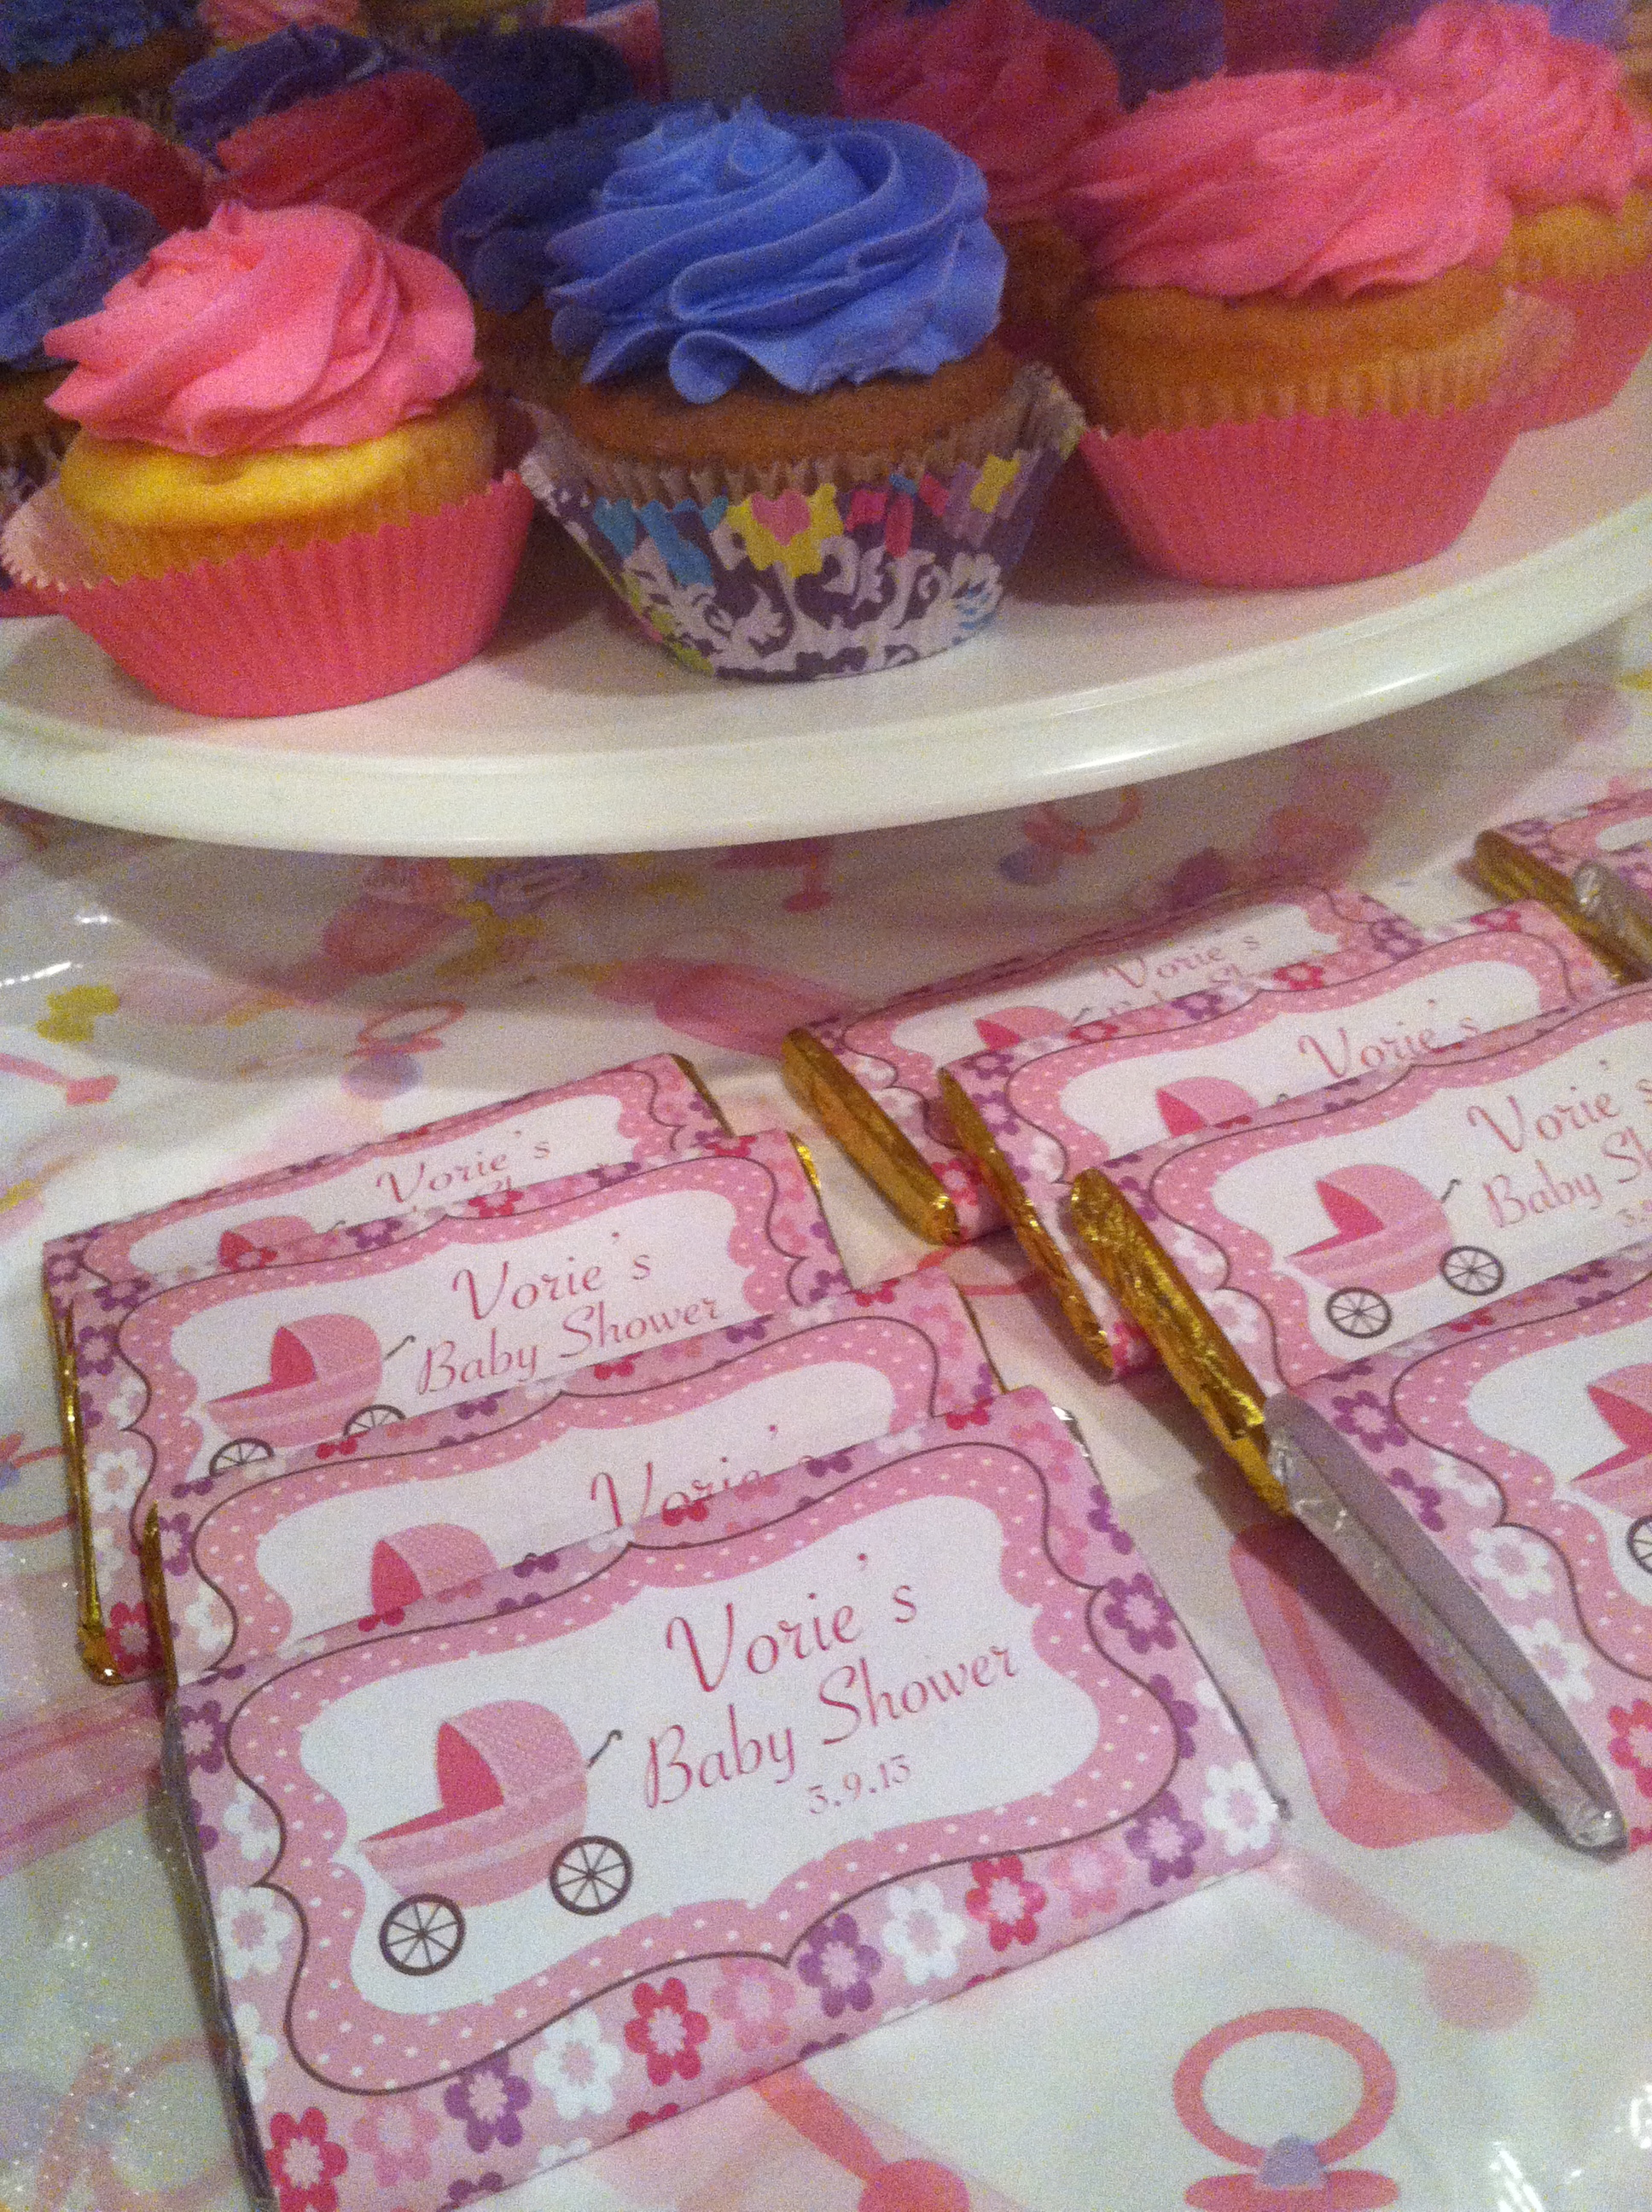 Baby Girl's Shower Dessert